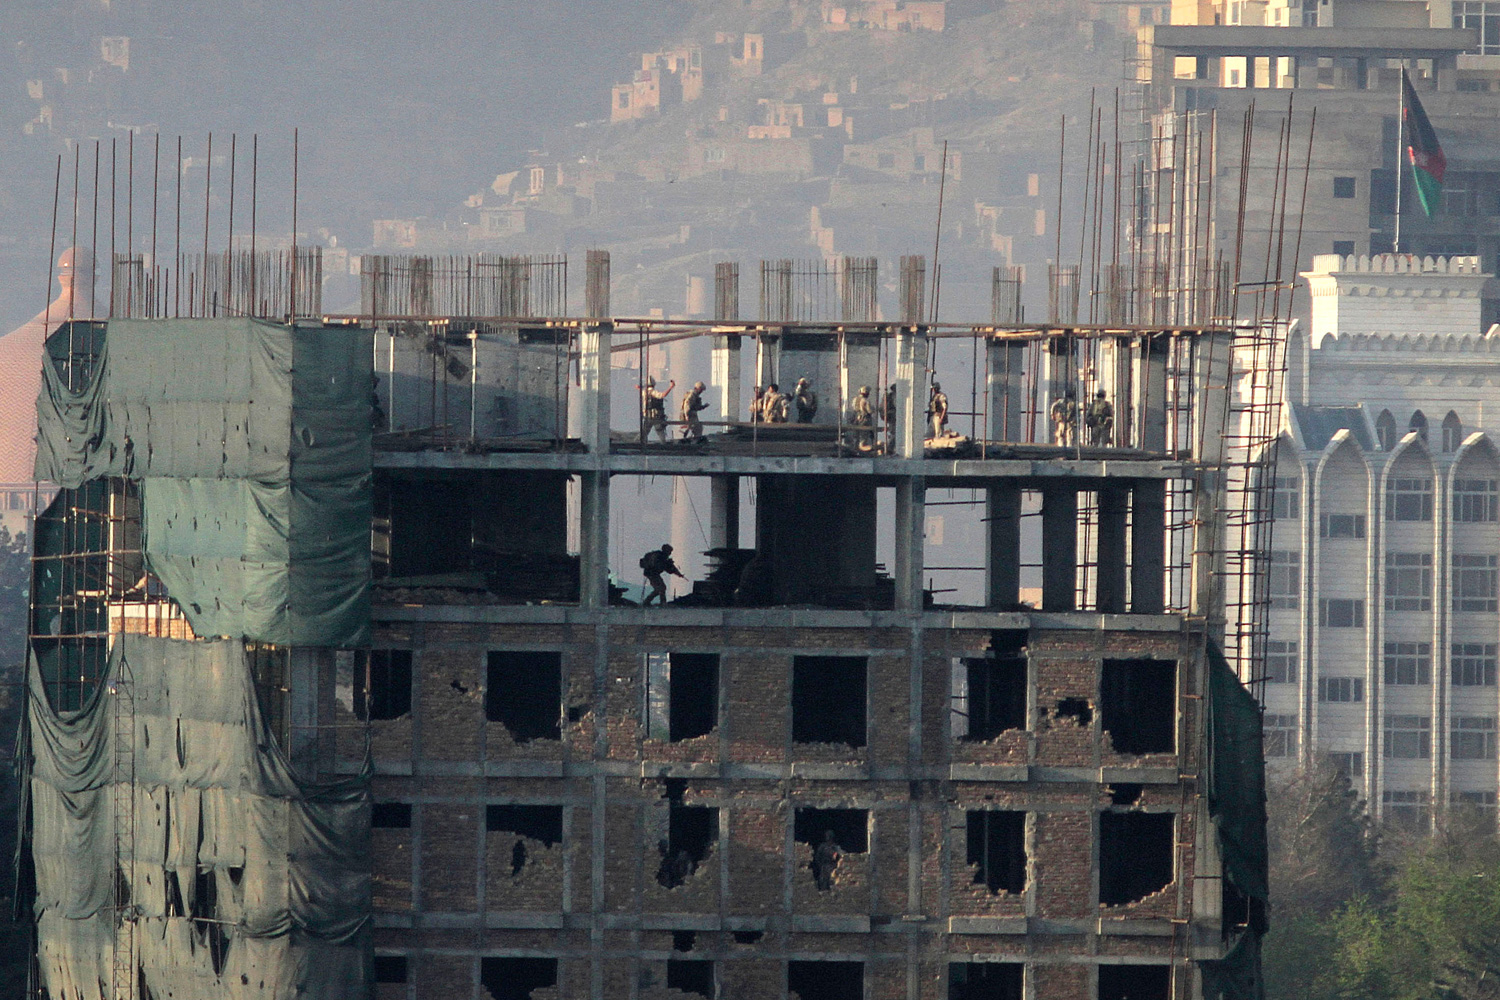 April 16, 2012. Afghan special forces are seen on top of a building that was occupied by militants in Kabul.